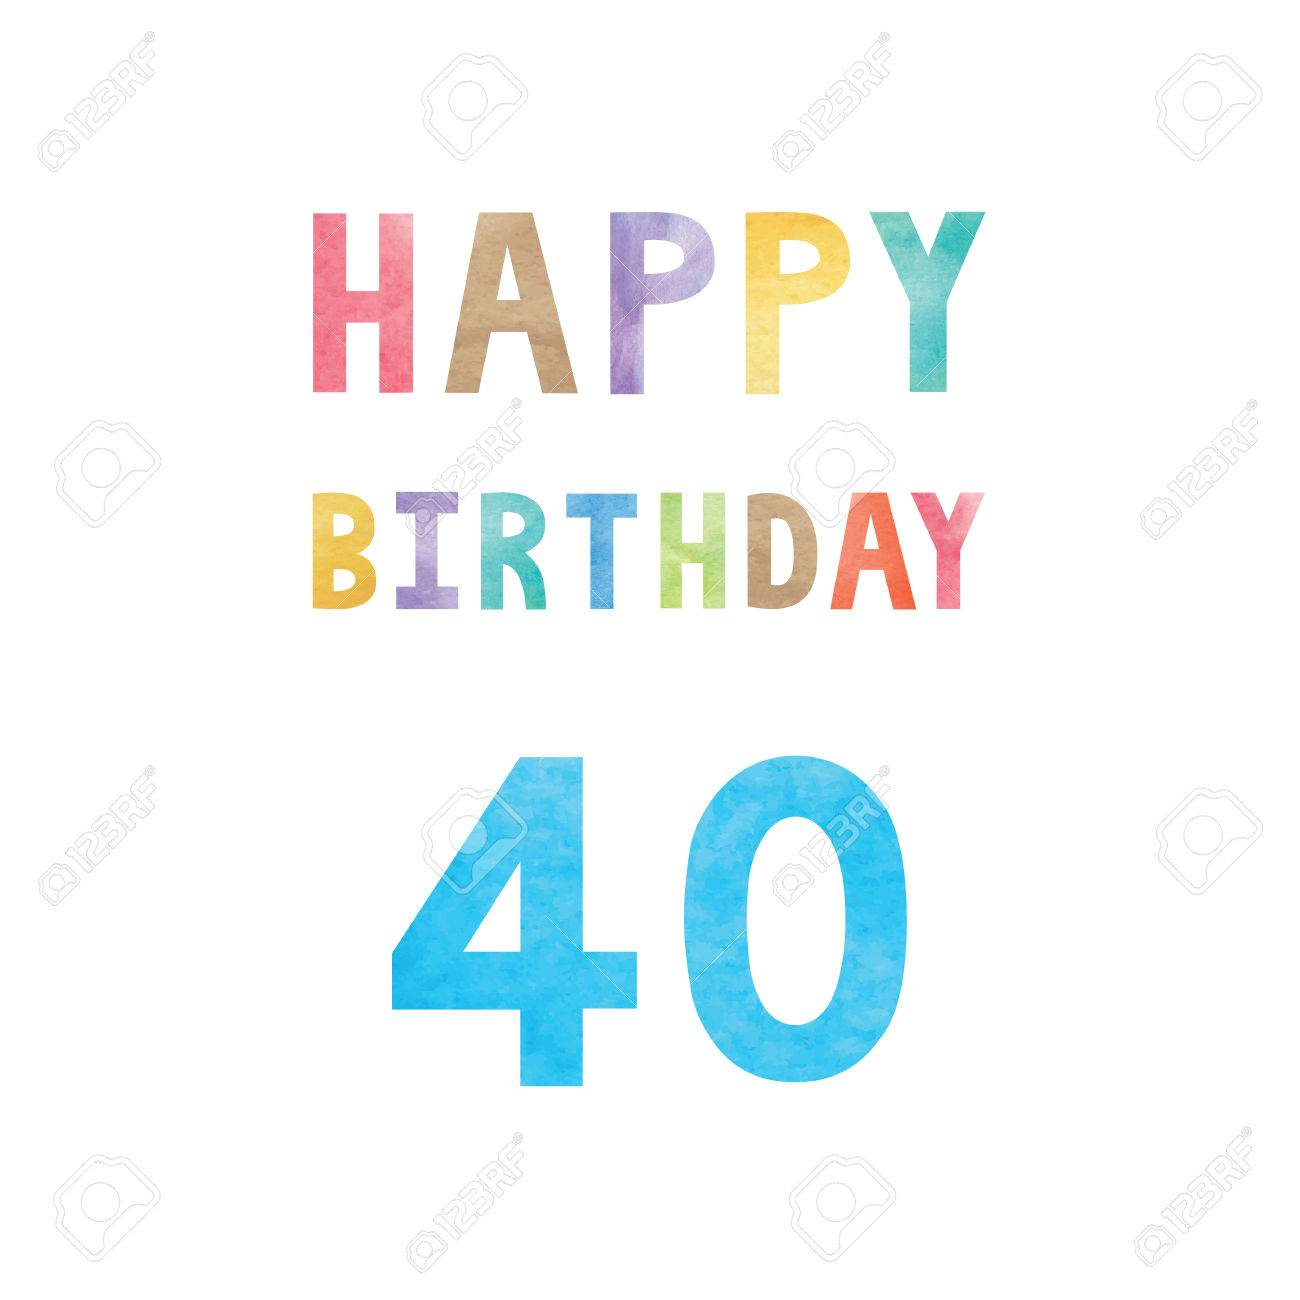 happy 40th birthday anniversary card with colorful watercolor